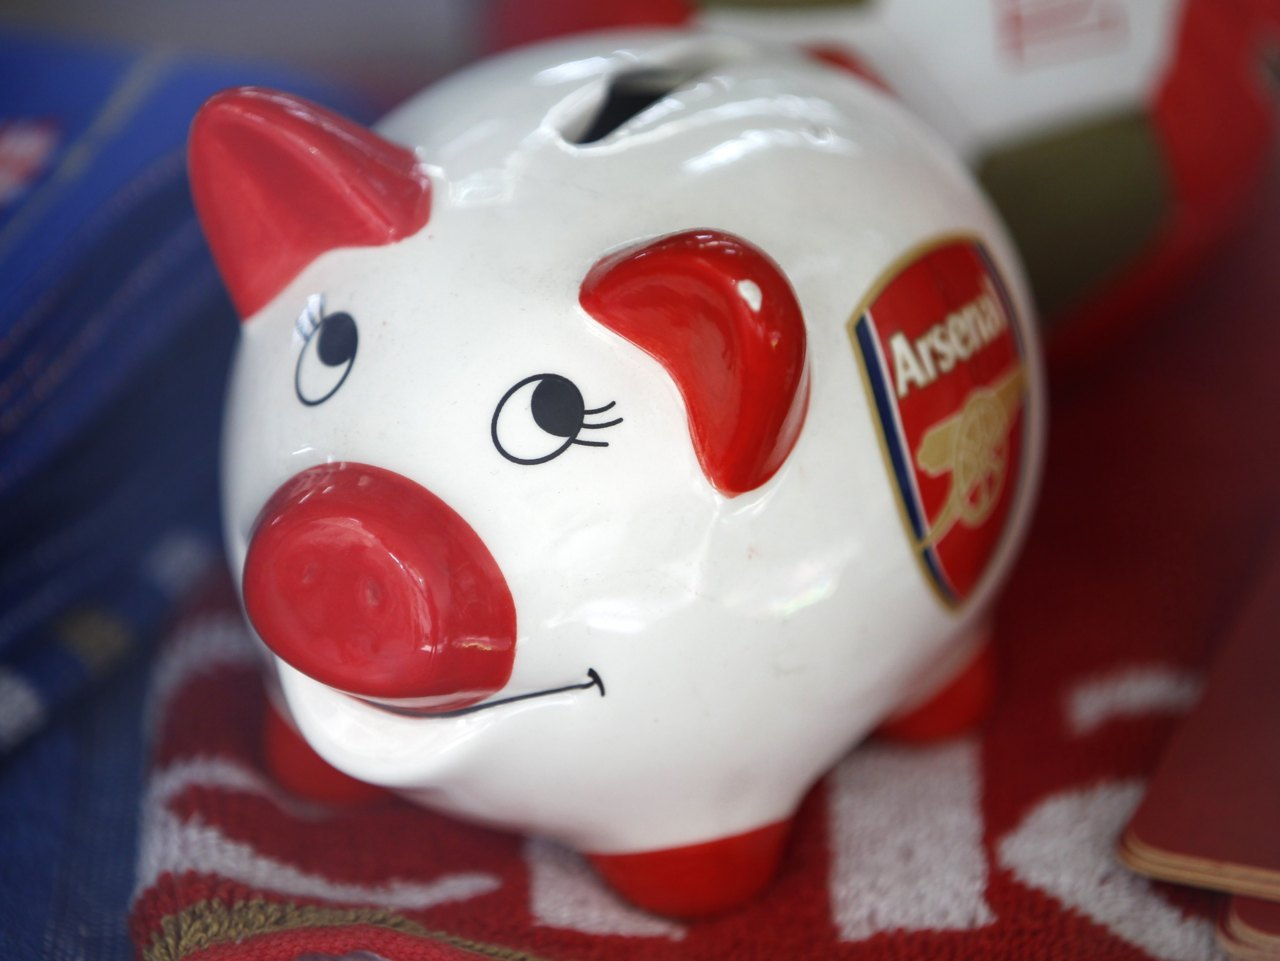 Here piggy, piggy, piggyA piggy bank branded with the logo of the English Premier League soccer club Arsenal is seen in a souvenir shop in London October 18, 2011. A future without relegation and promotion from and to the English Premier League would be akin to suicide, according to Manchester United manager Alex Ferguson. Photo: Chris Helgren/Reuters